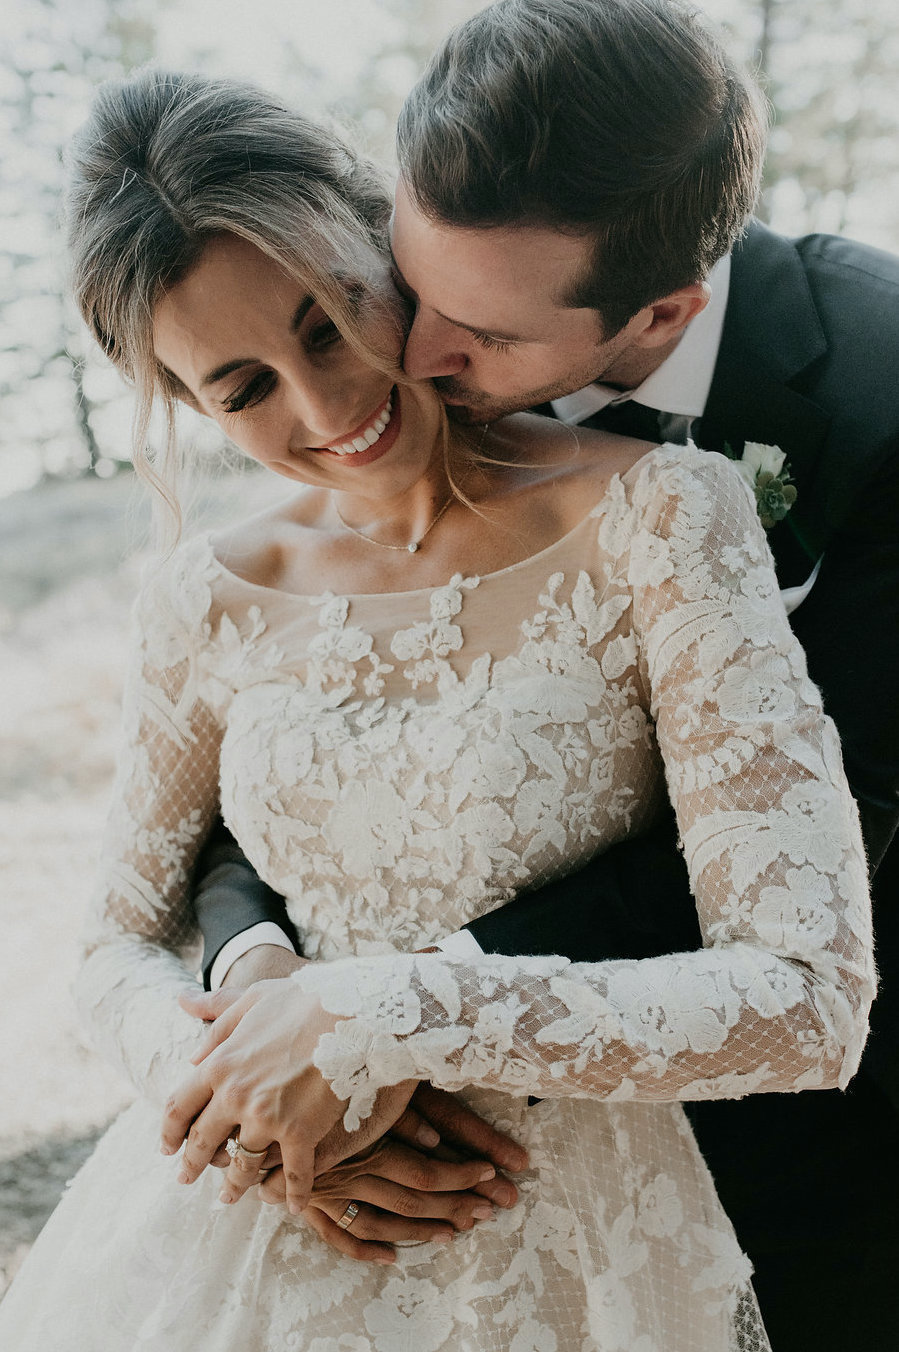 Bride customized her wedding dress with Anomalie Online Wedding Dresses with long sleeves, floral lace applique, and swiss dot fabric.